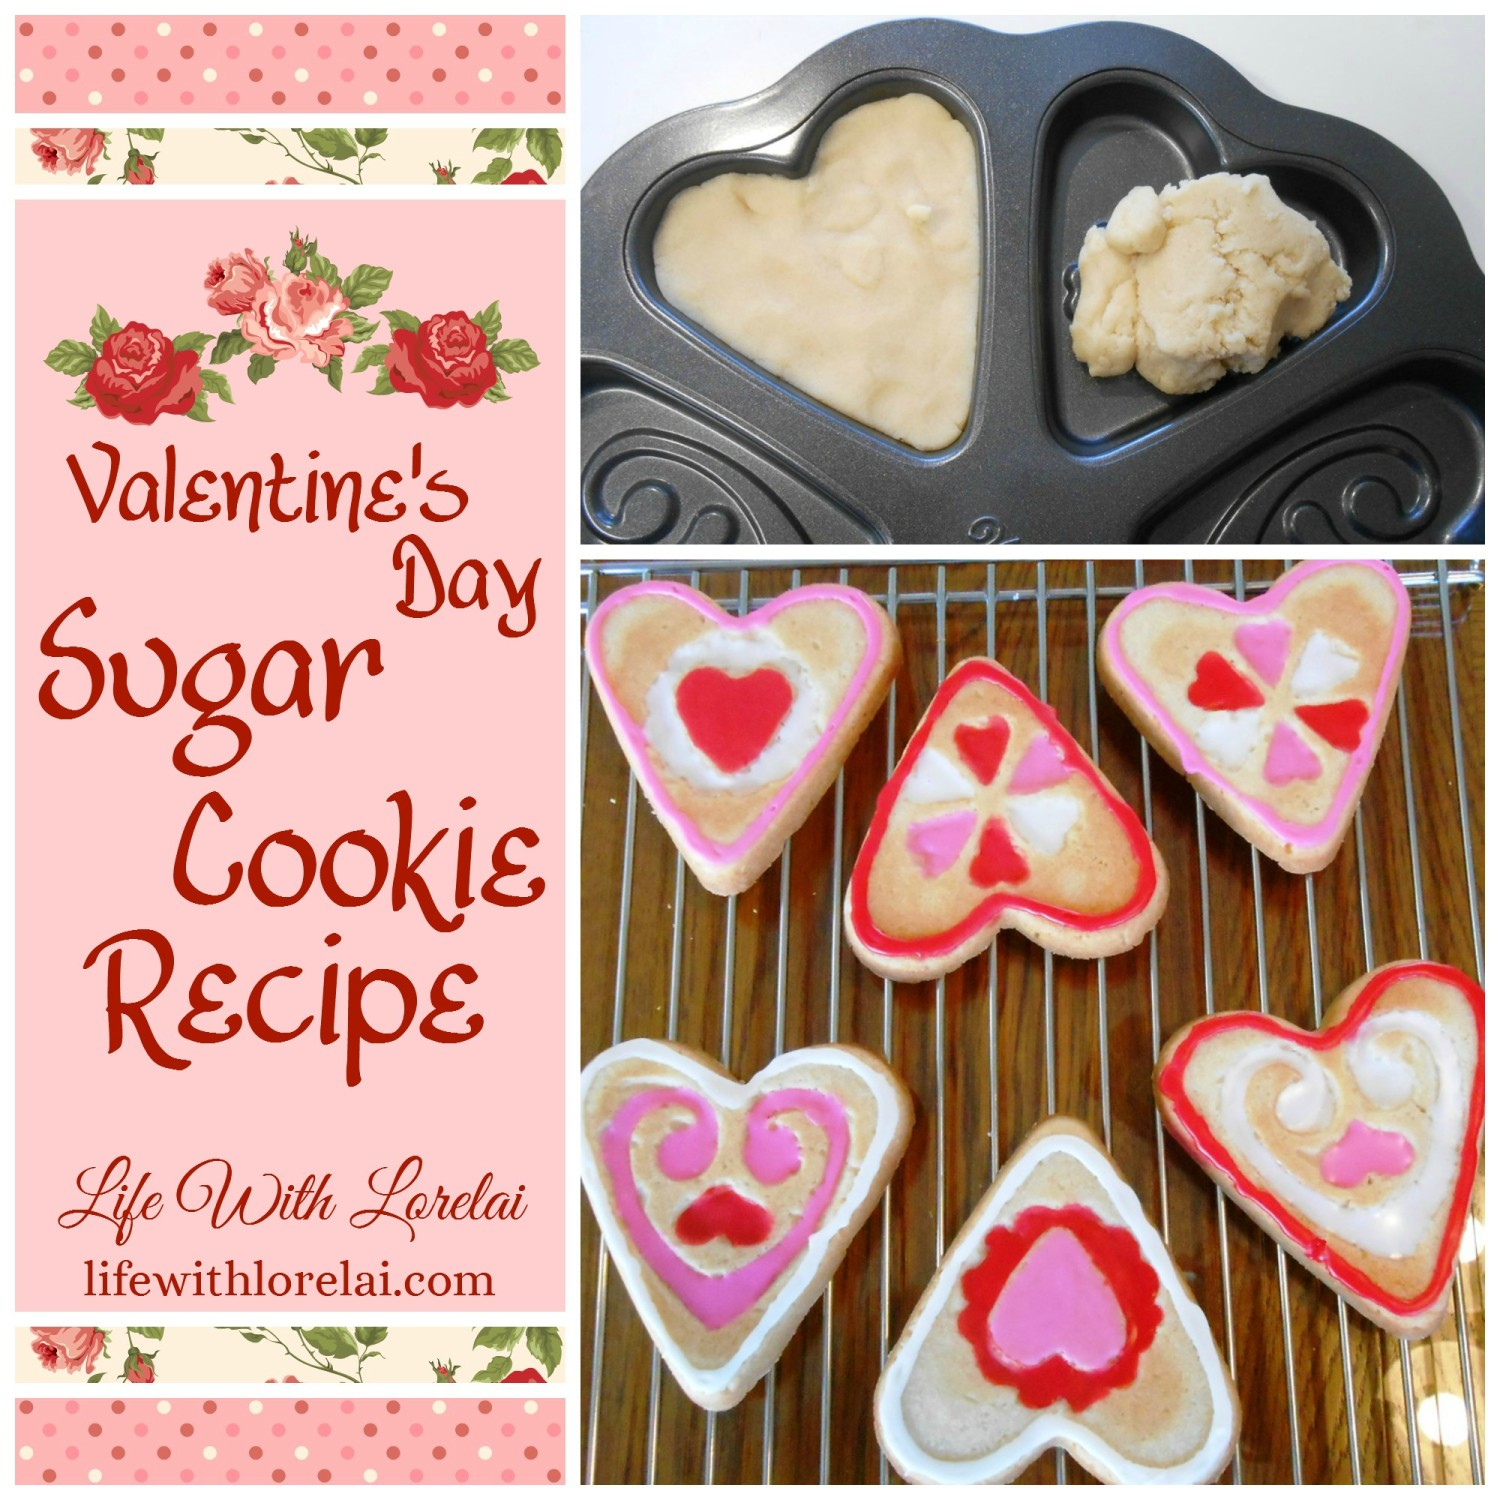 Valentine's Day Sugar Cookies Recipe - Bake them in a mold or use your cookie cutters!